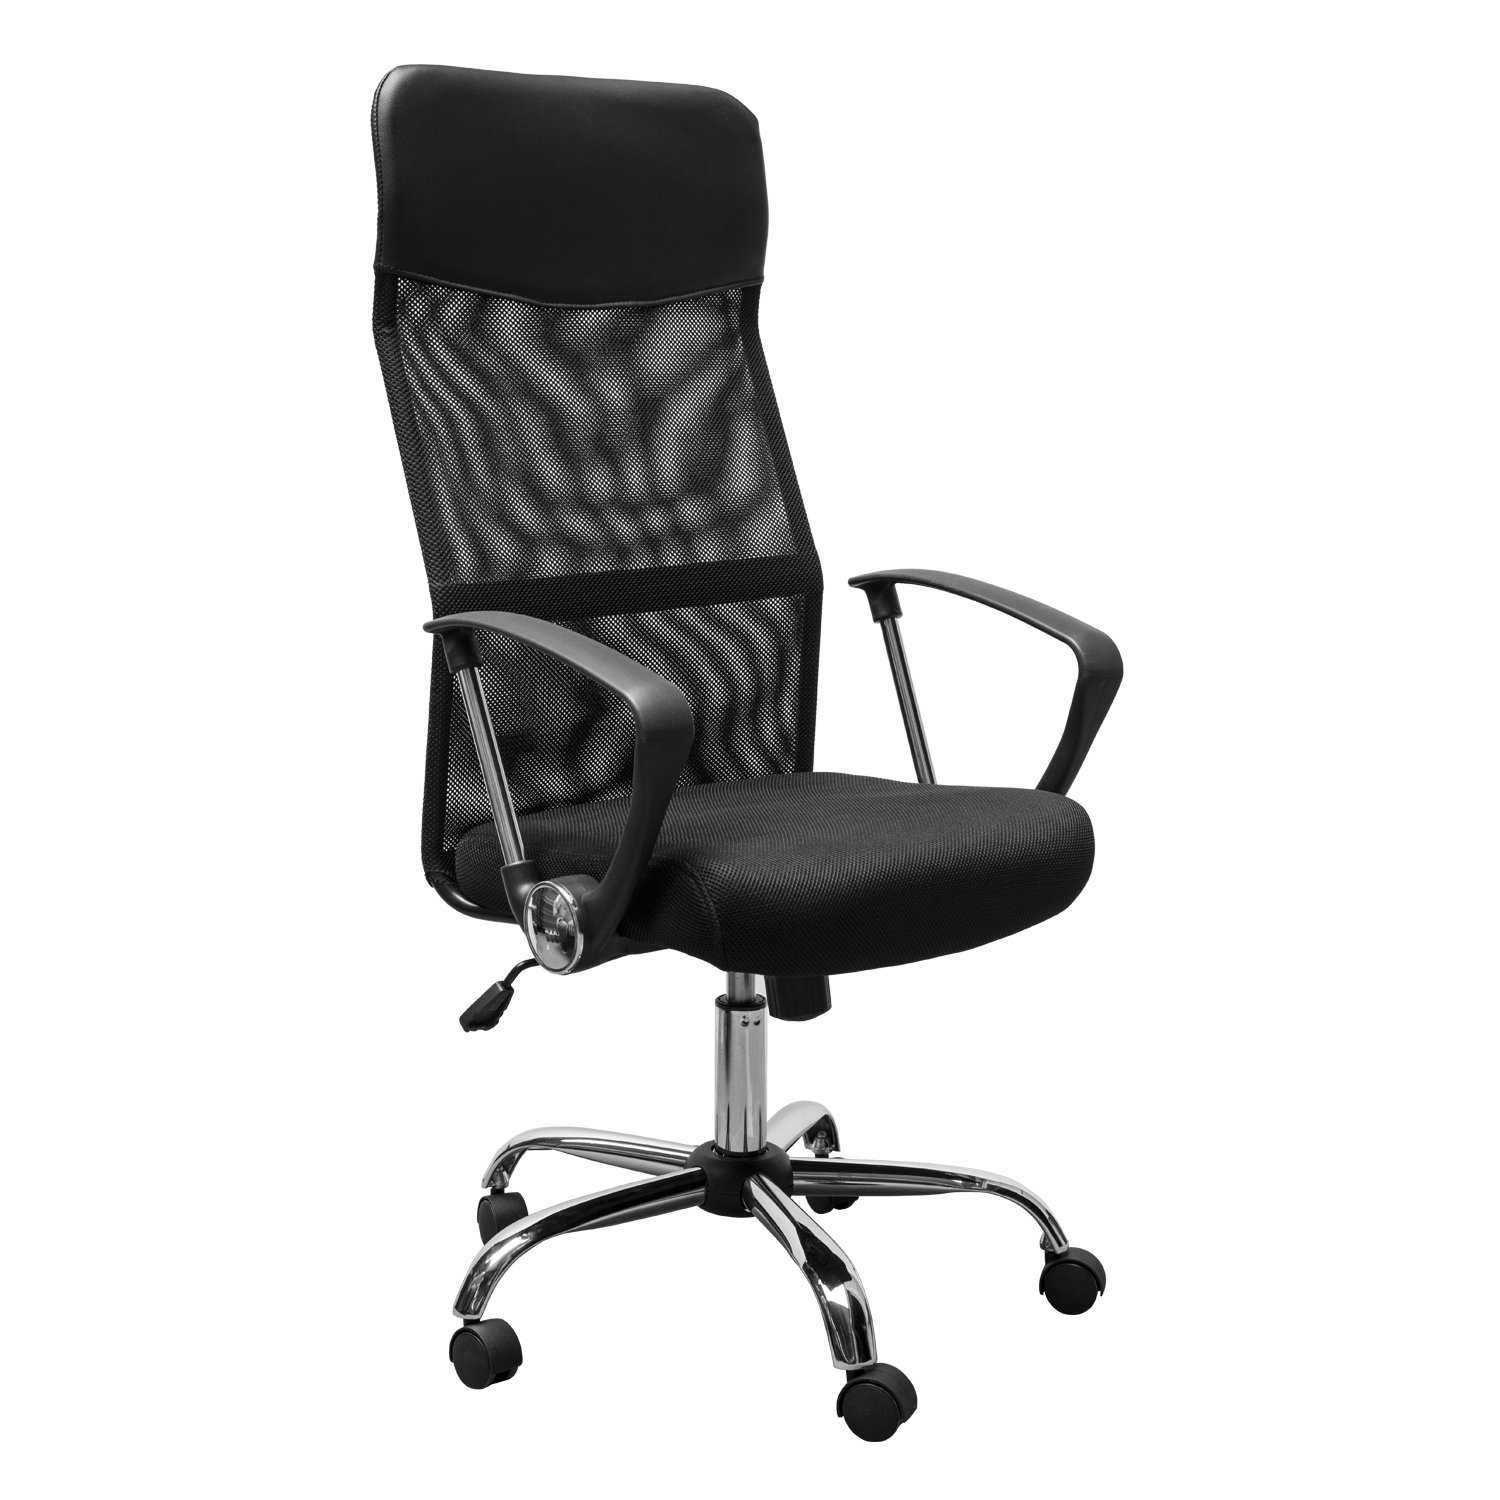 Best office chair 2016 - Best Deal Chinkyboo Adjustable Sixbros Office Chair Black